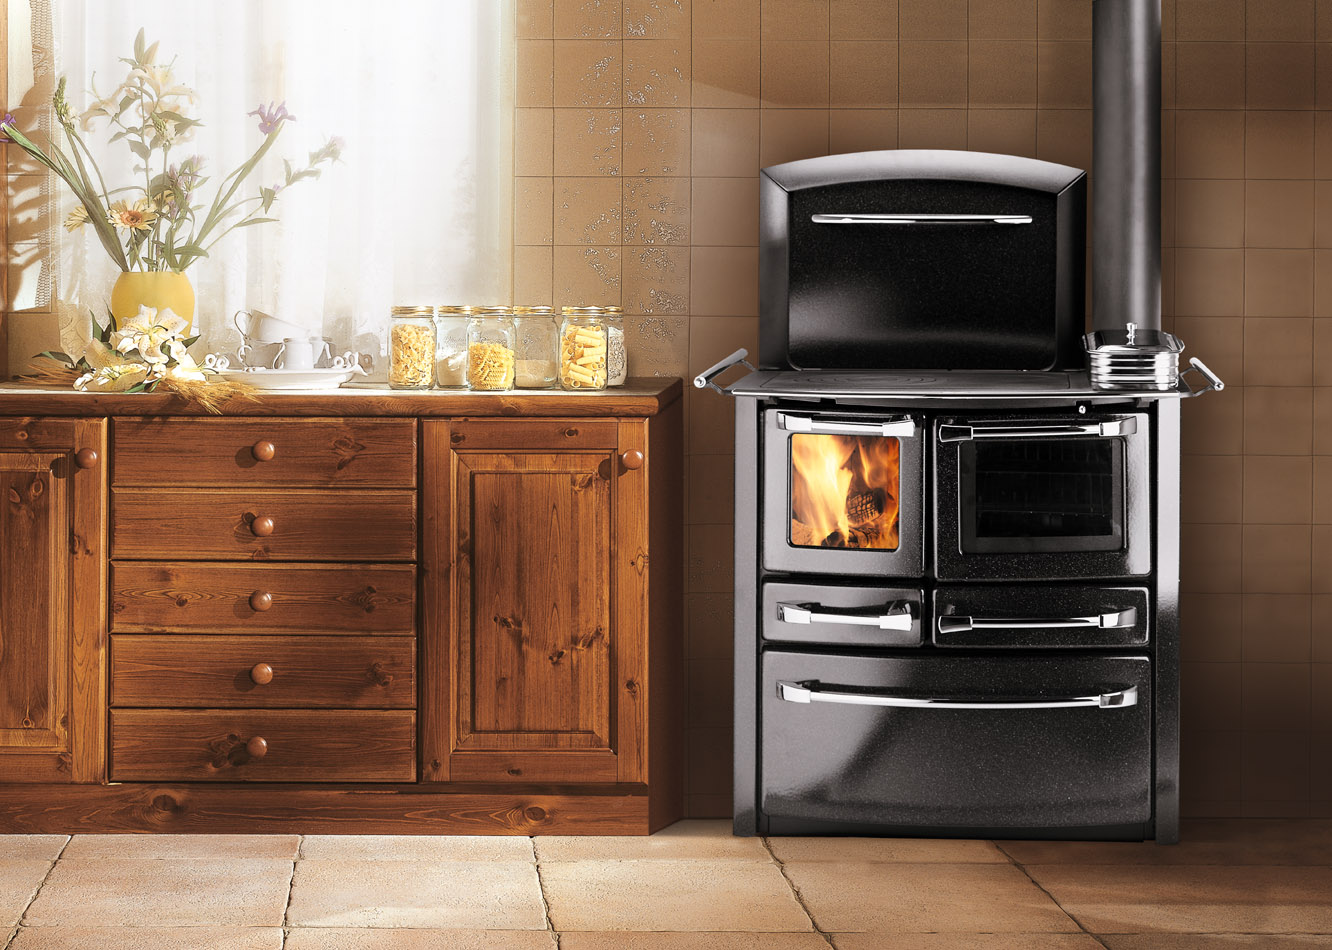 16ludlow-stoves-ltd_valentina-curved-woodburning-cooker.jpg